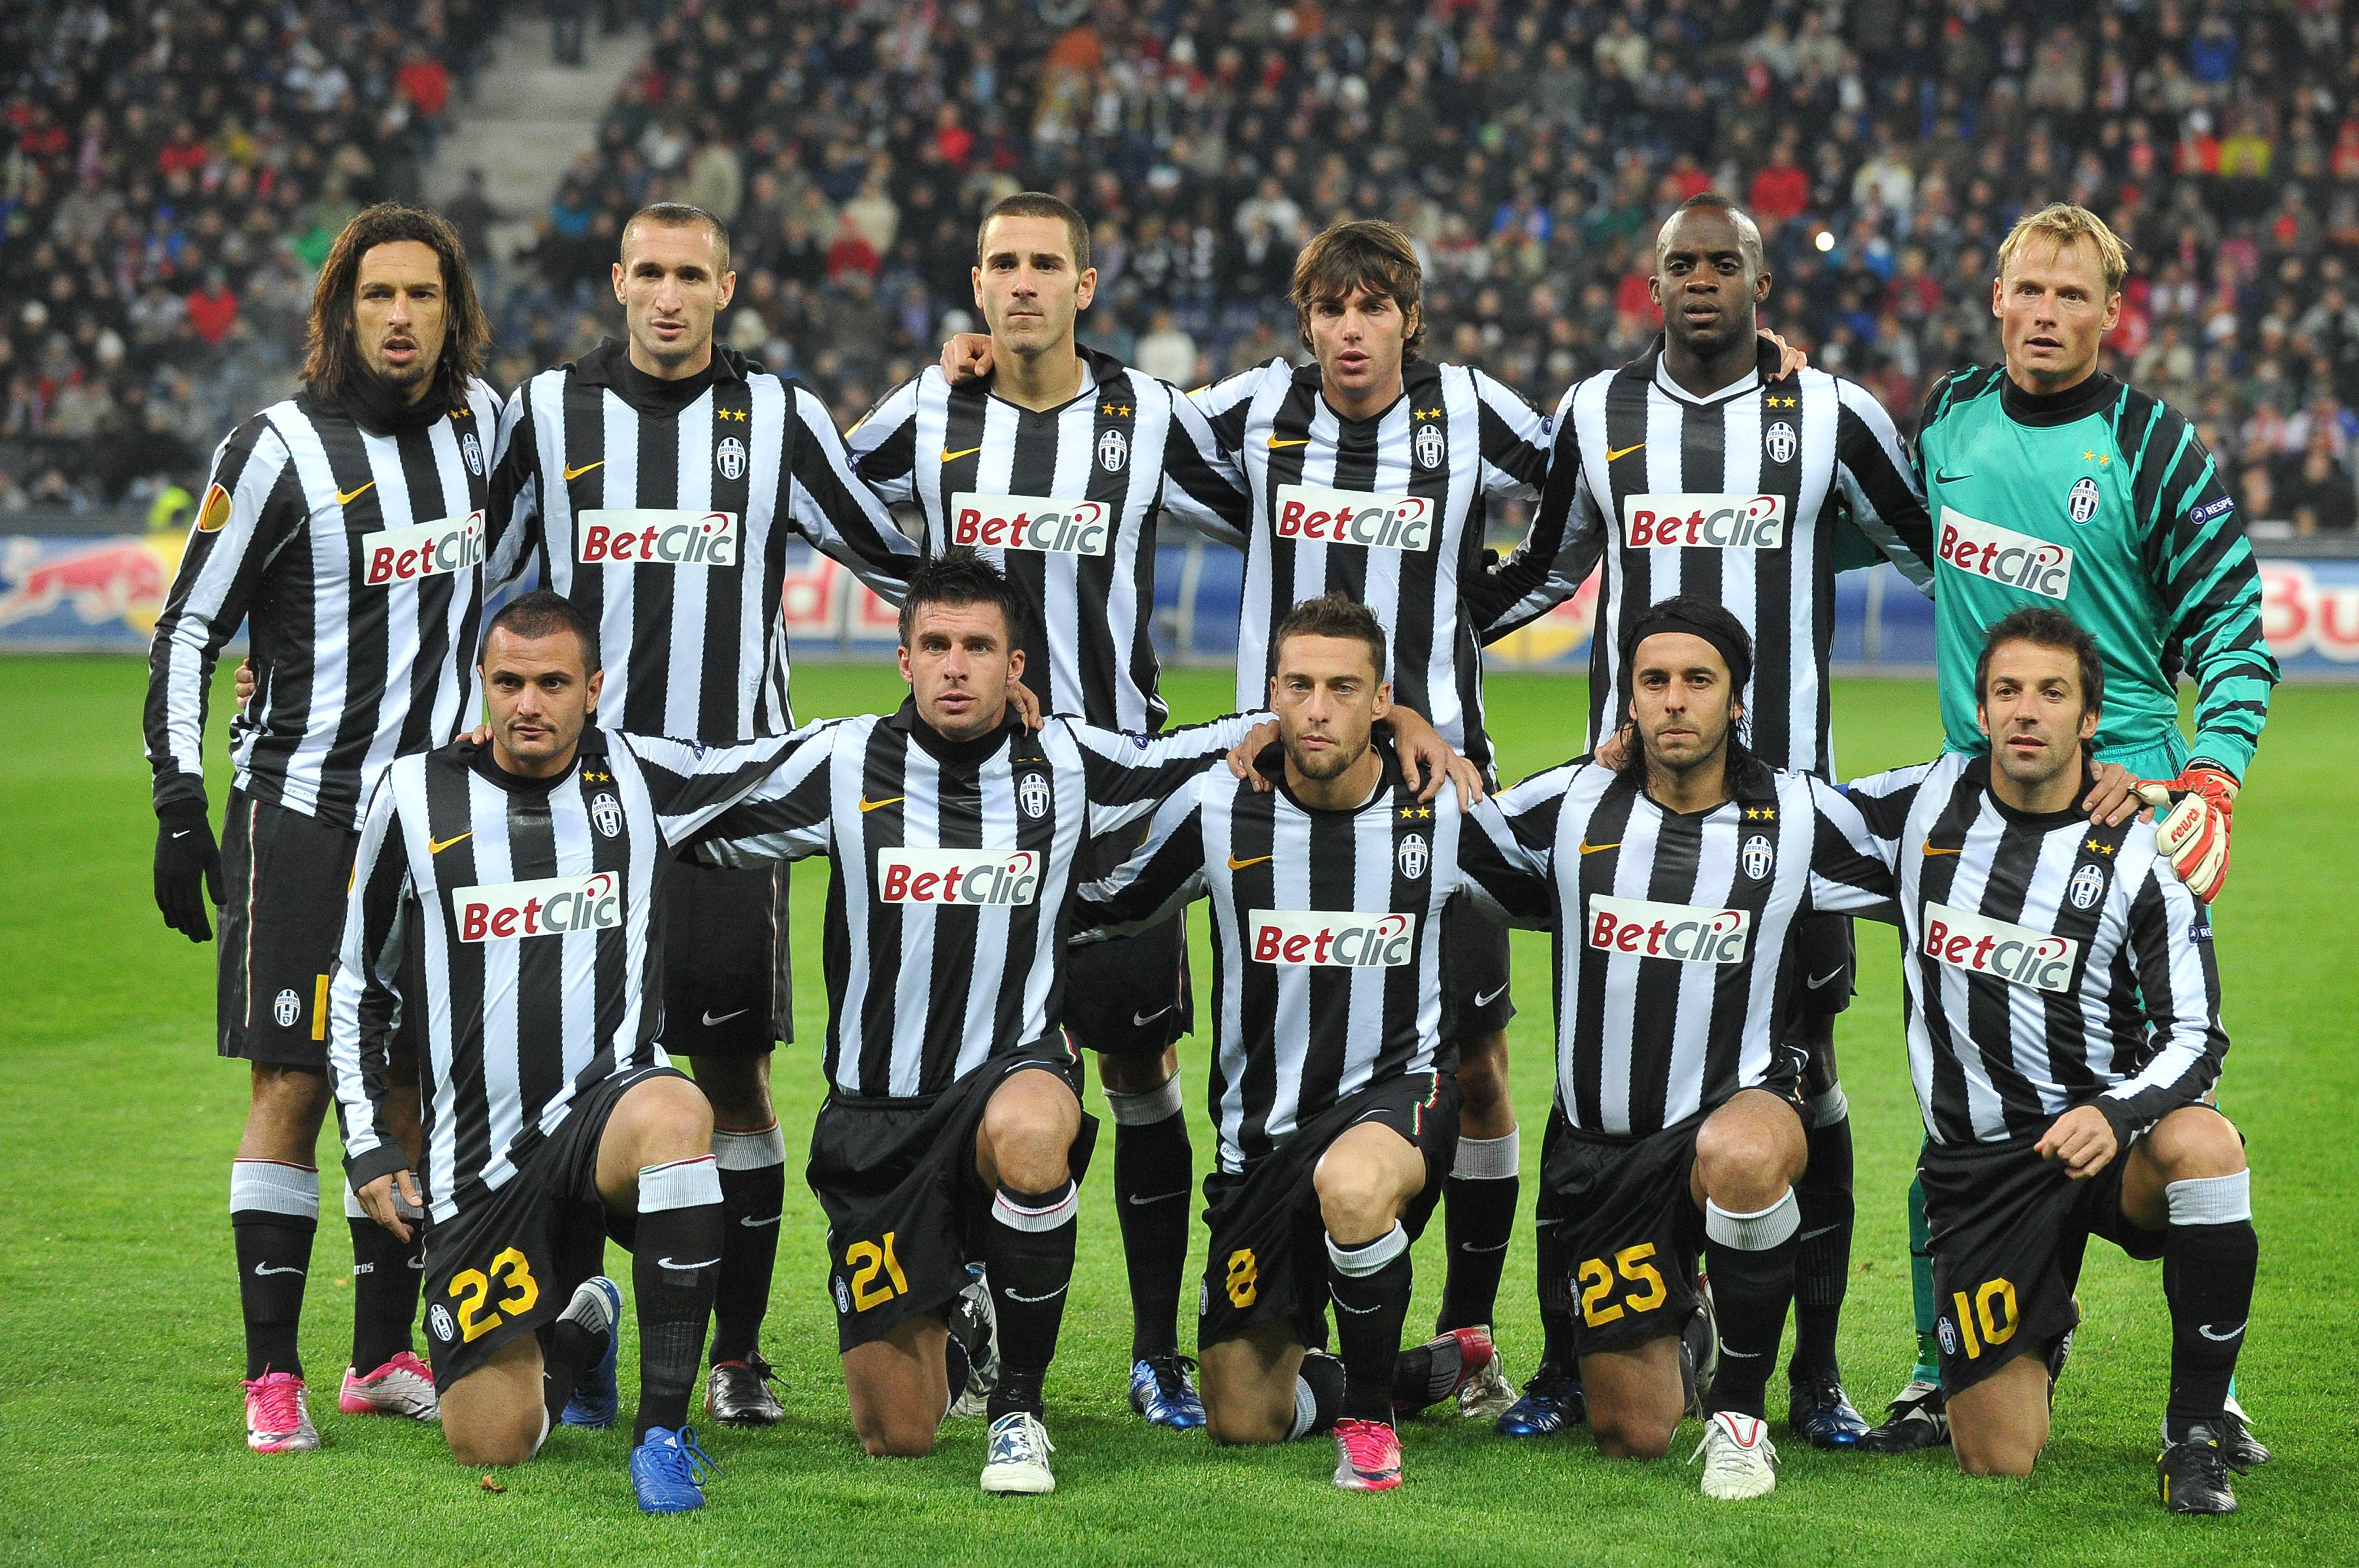 Players of Juventus Turin pose for a pic